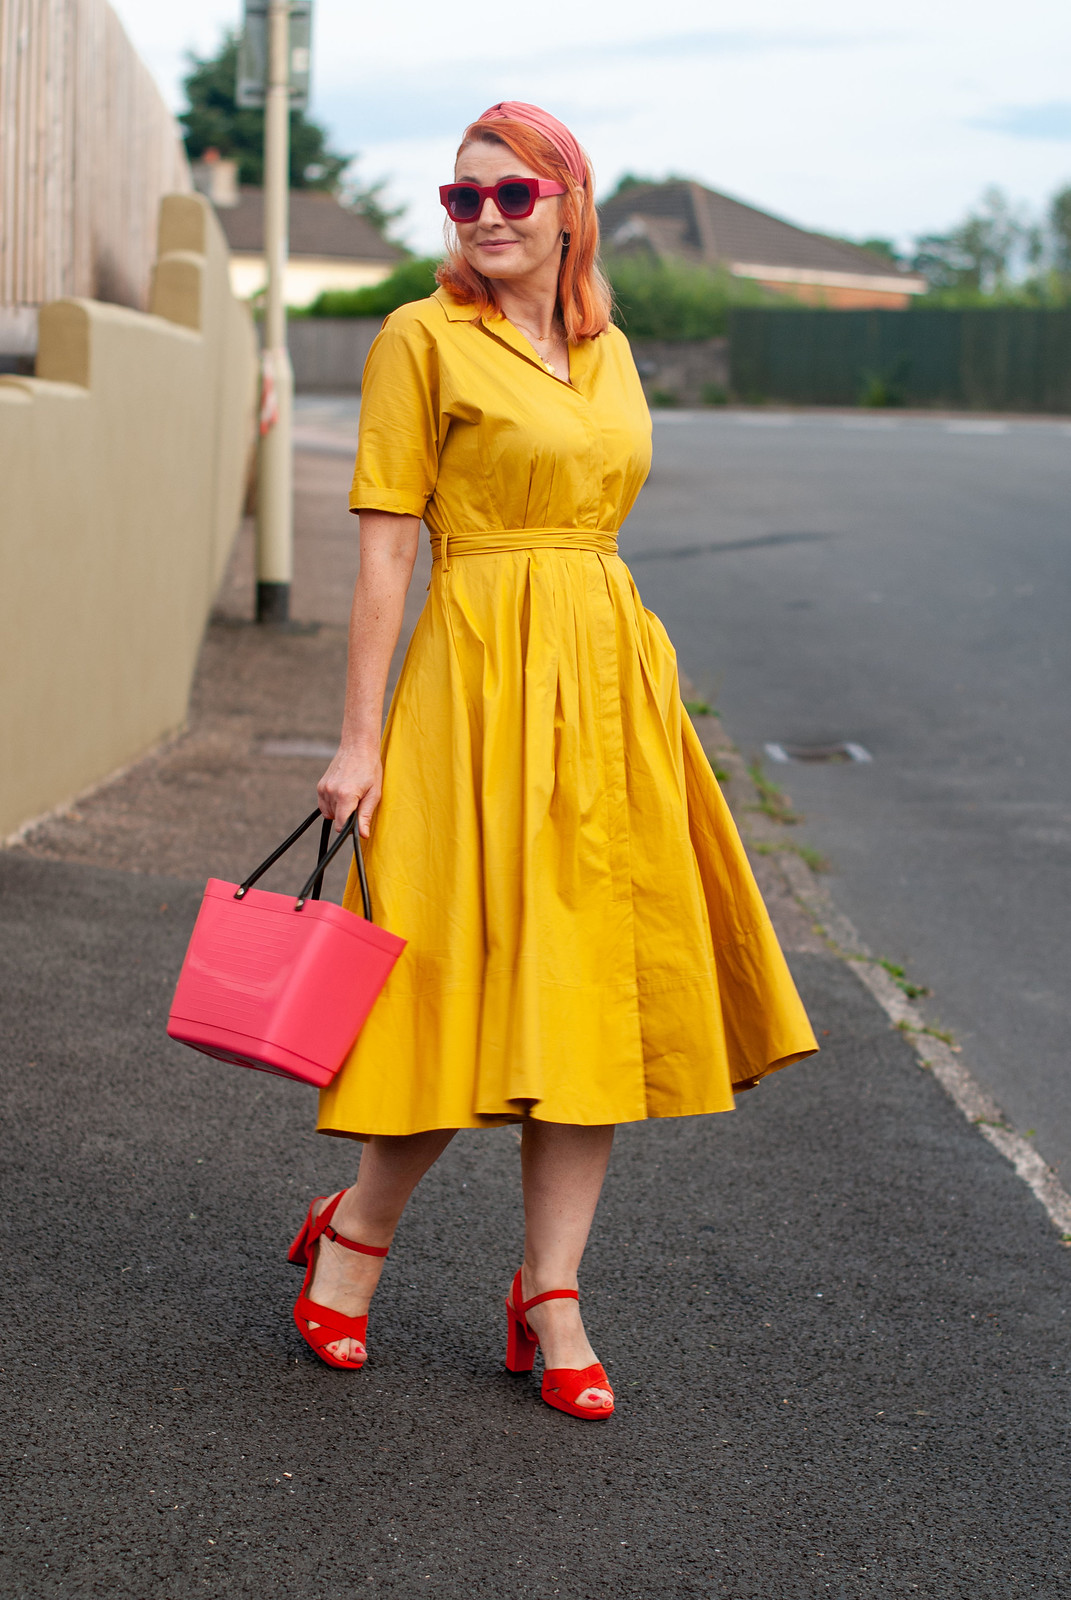 Over 40 fashion blogger Not Dressed As Lamb wearing a yellow summer dress in a shirt style \ red strappy block heels \ pink bucket bag \ pink headband \ red square sunglasses